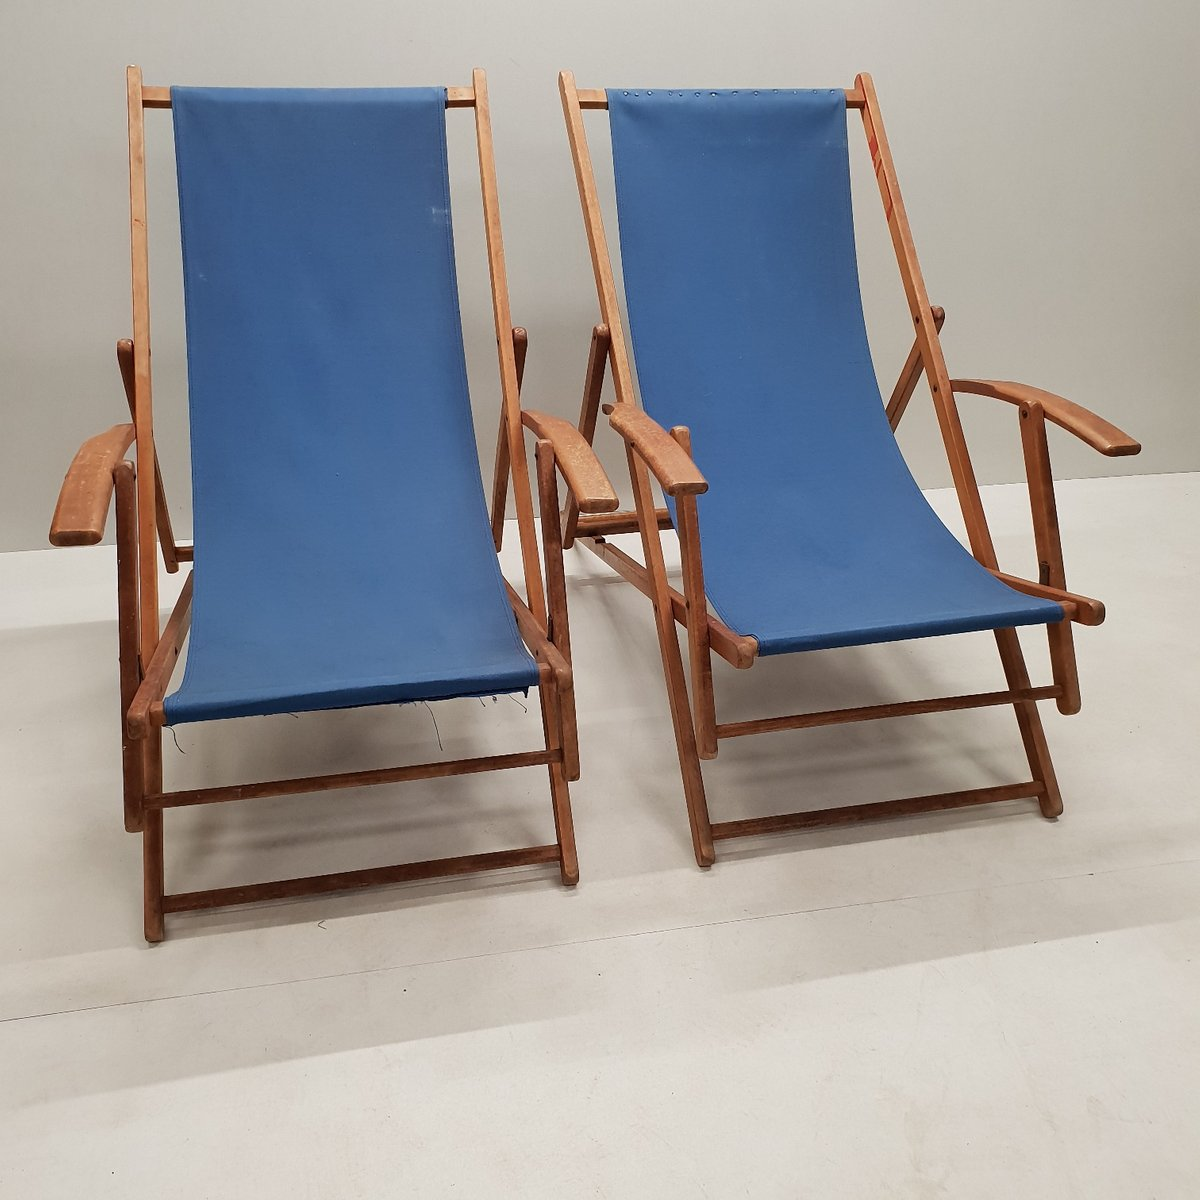 Vintage Wooden Folding Beach Chairs With Armrests 1950s